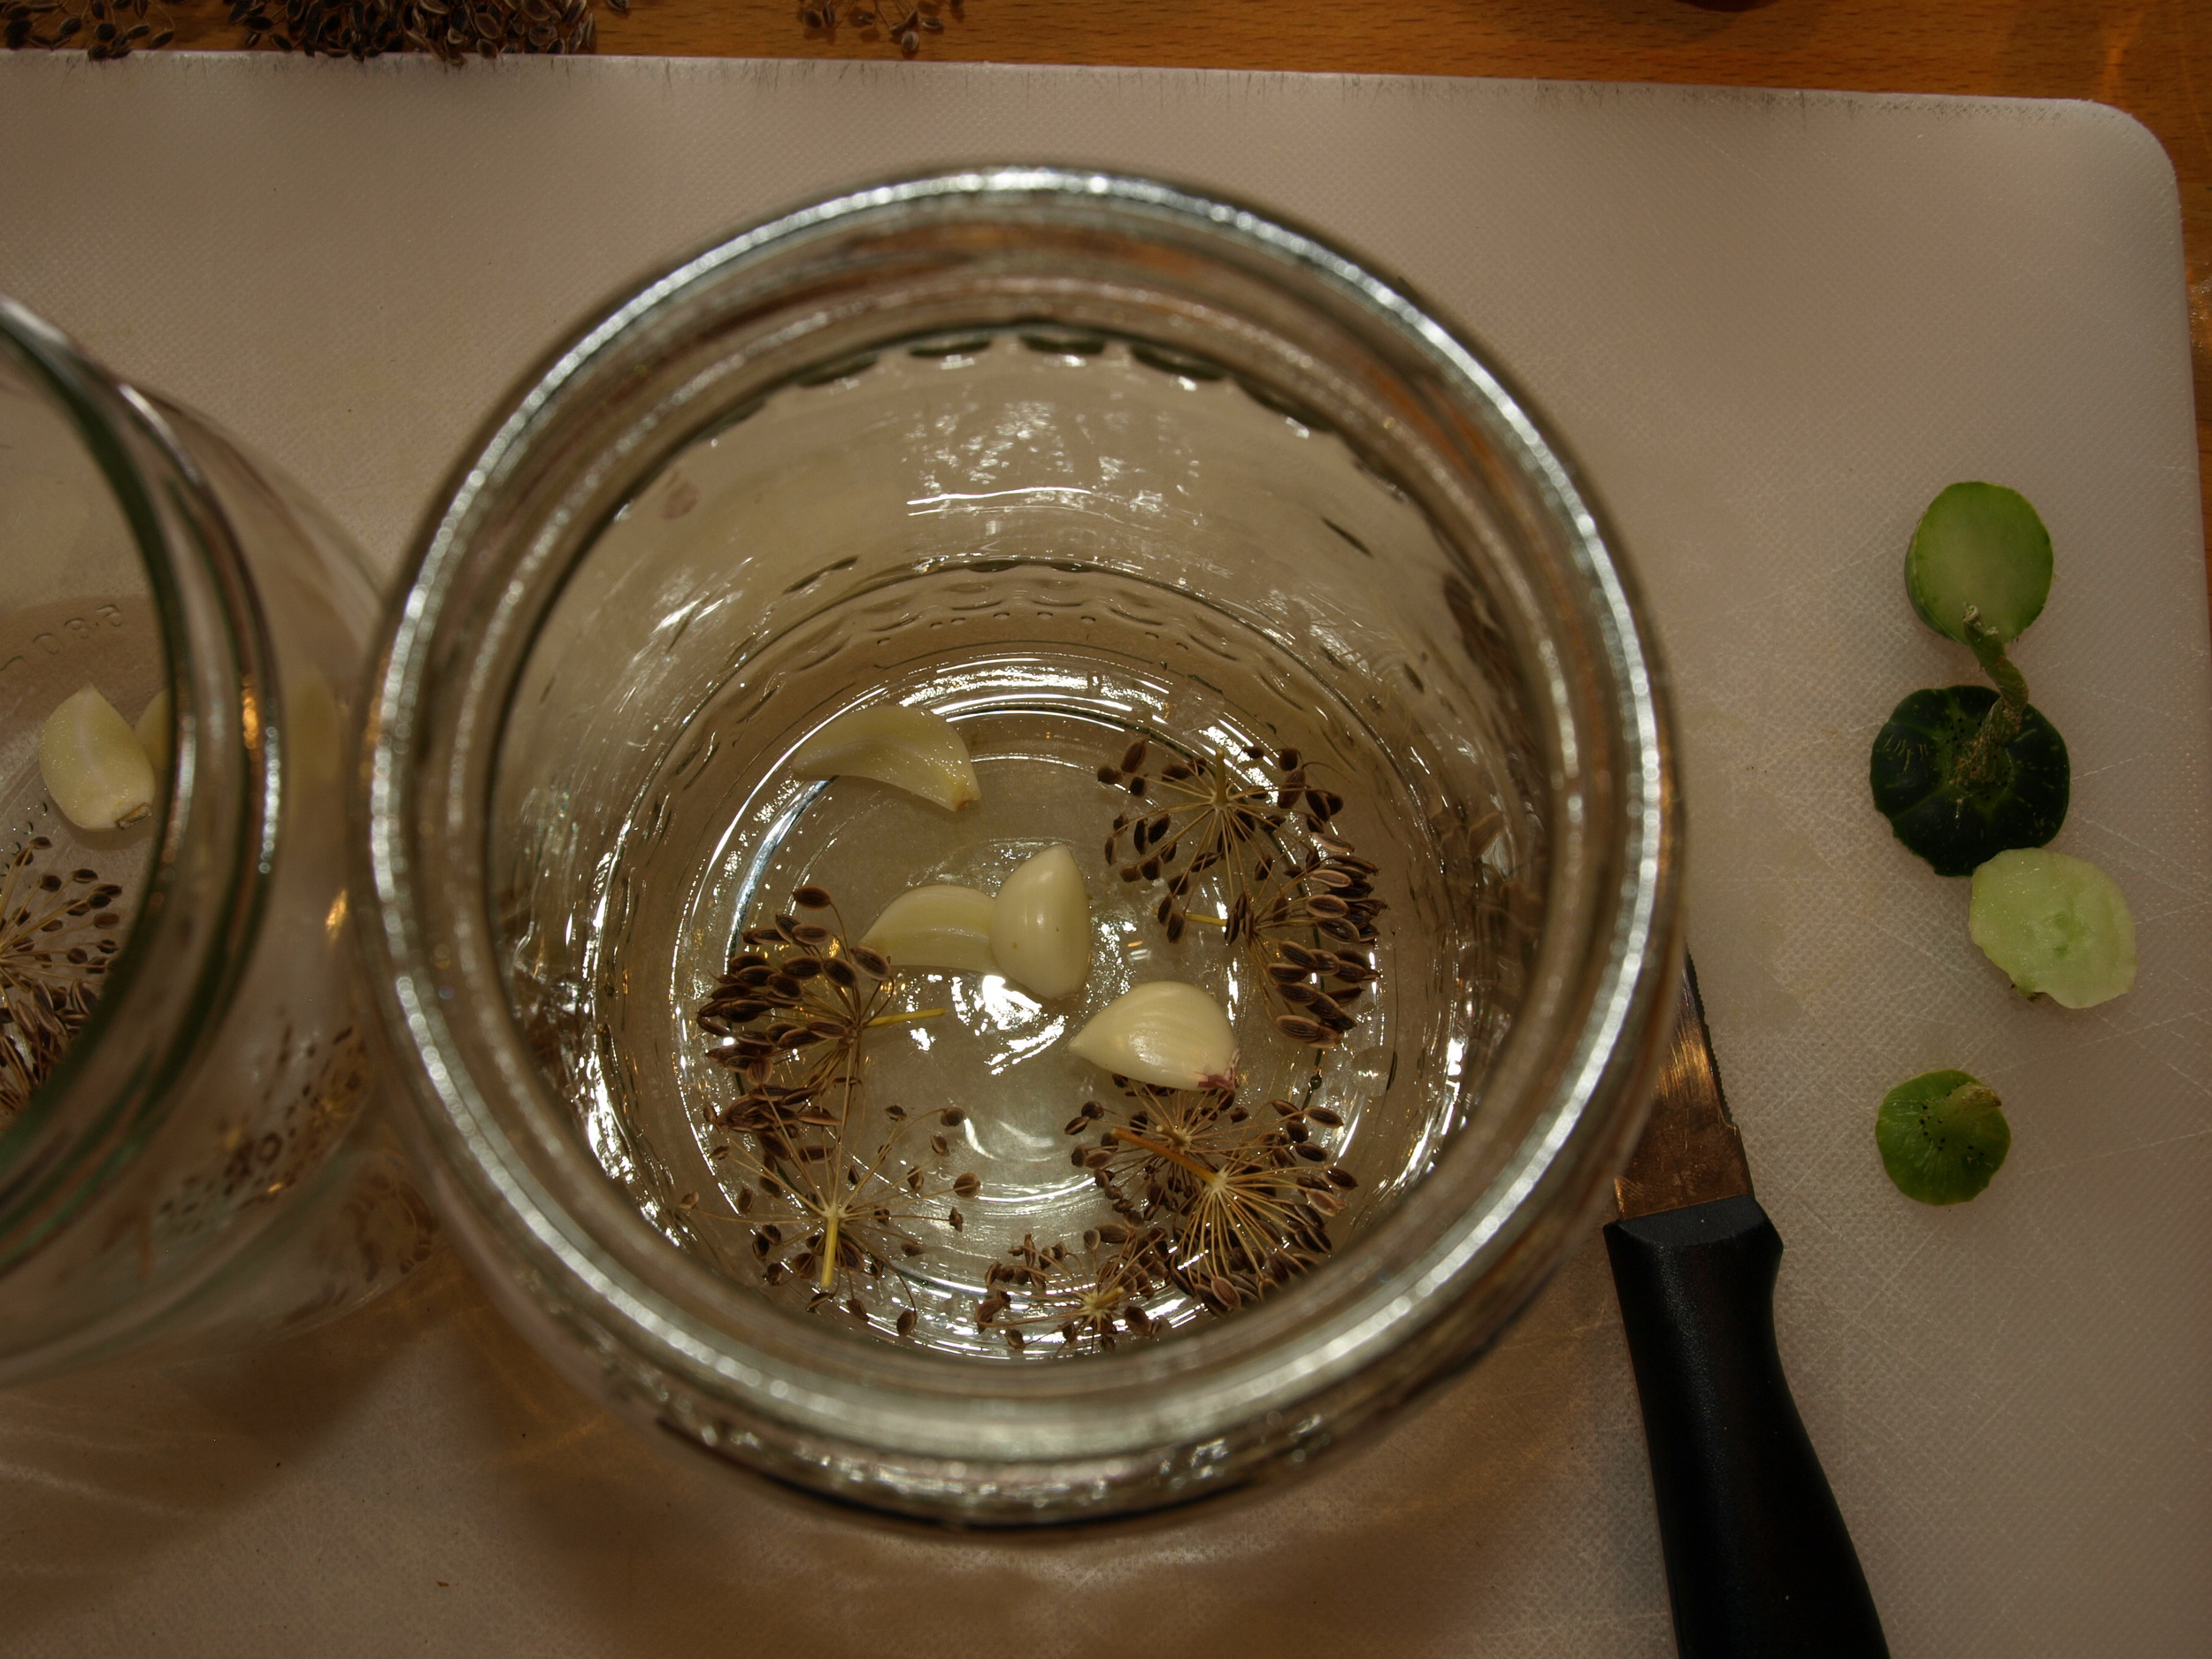 Dill seeds and garlic in the jars